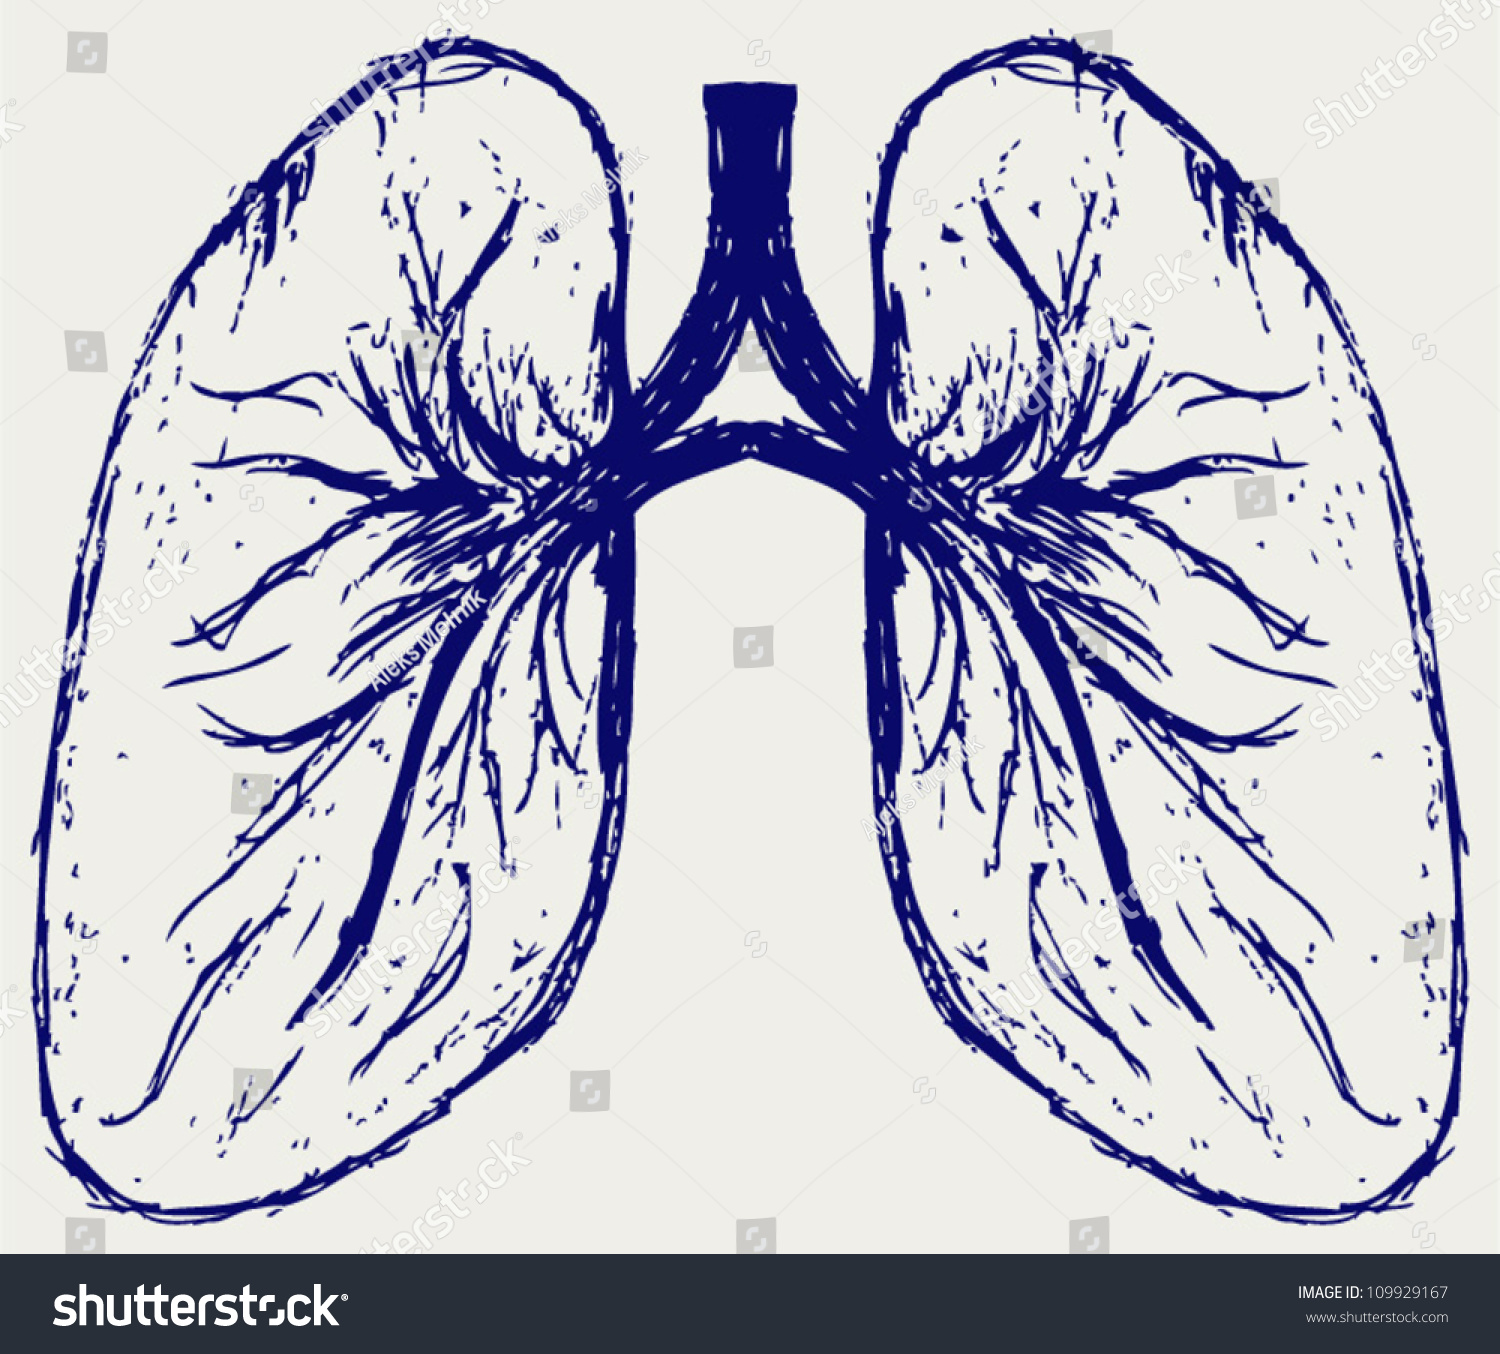 Lungs Person Sketch Stock Vector 109929167 - Shutterstock